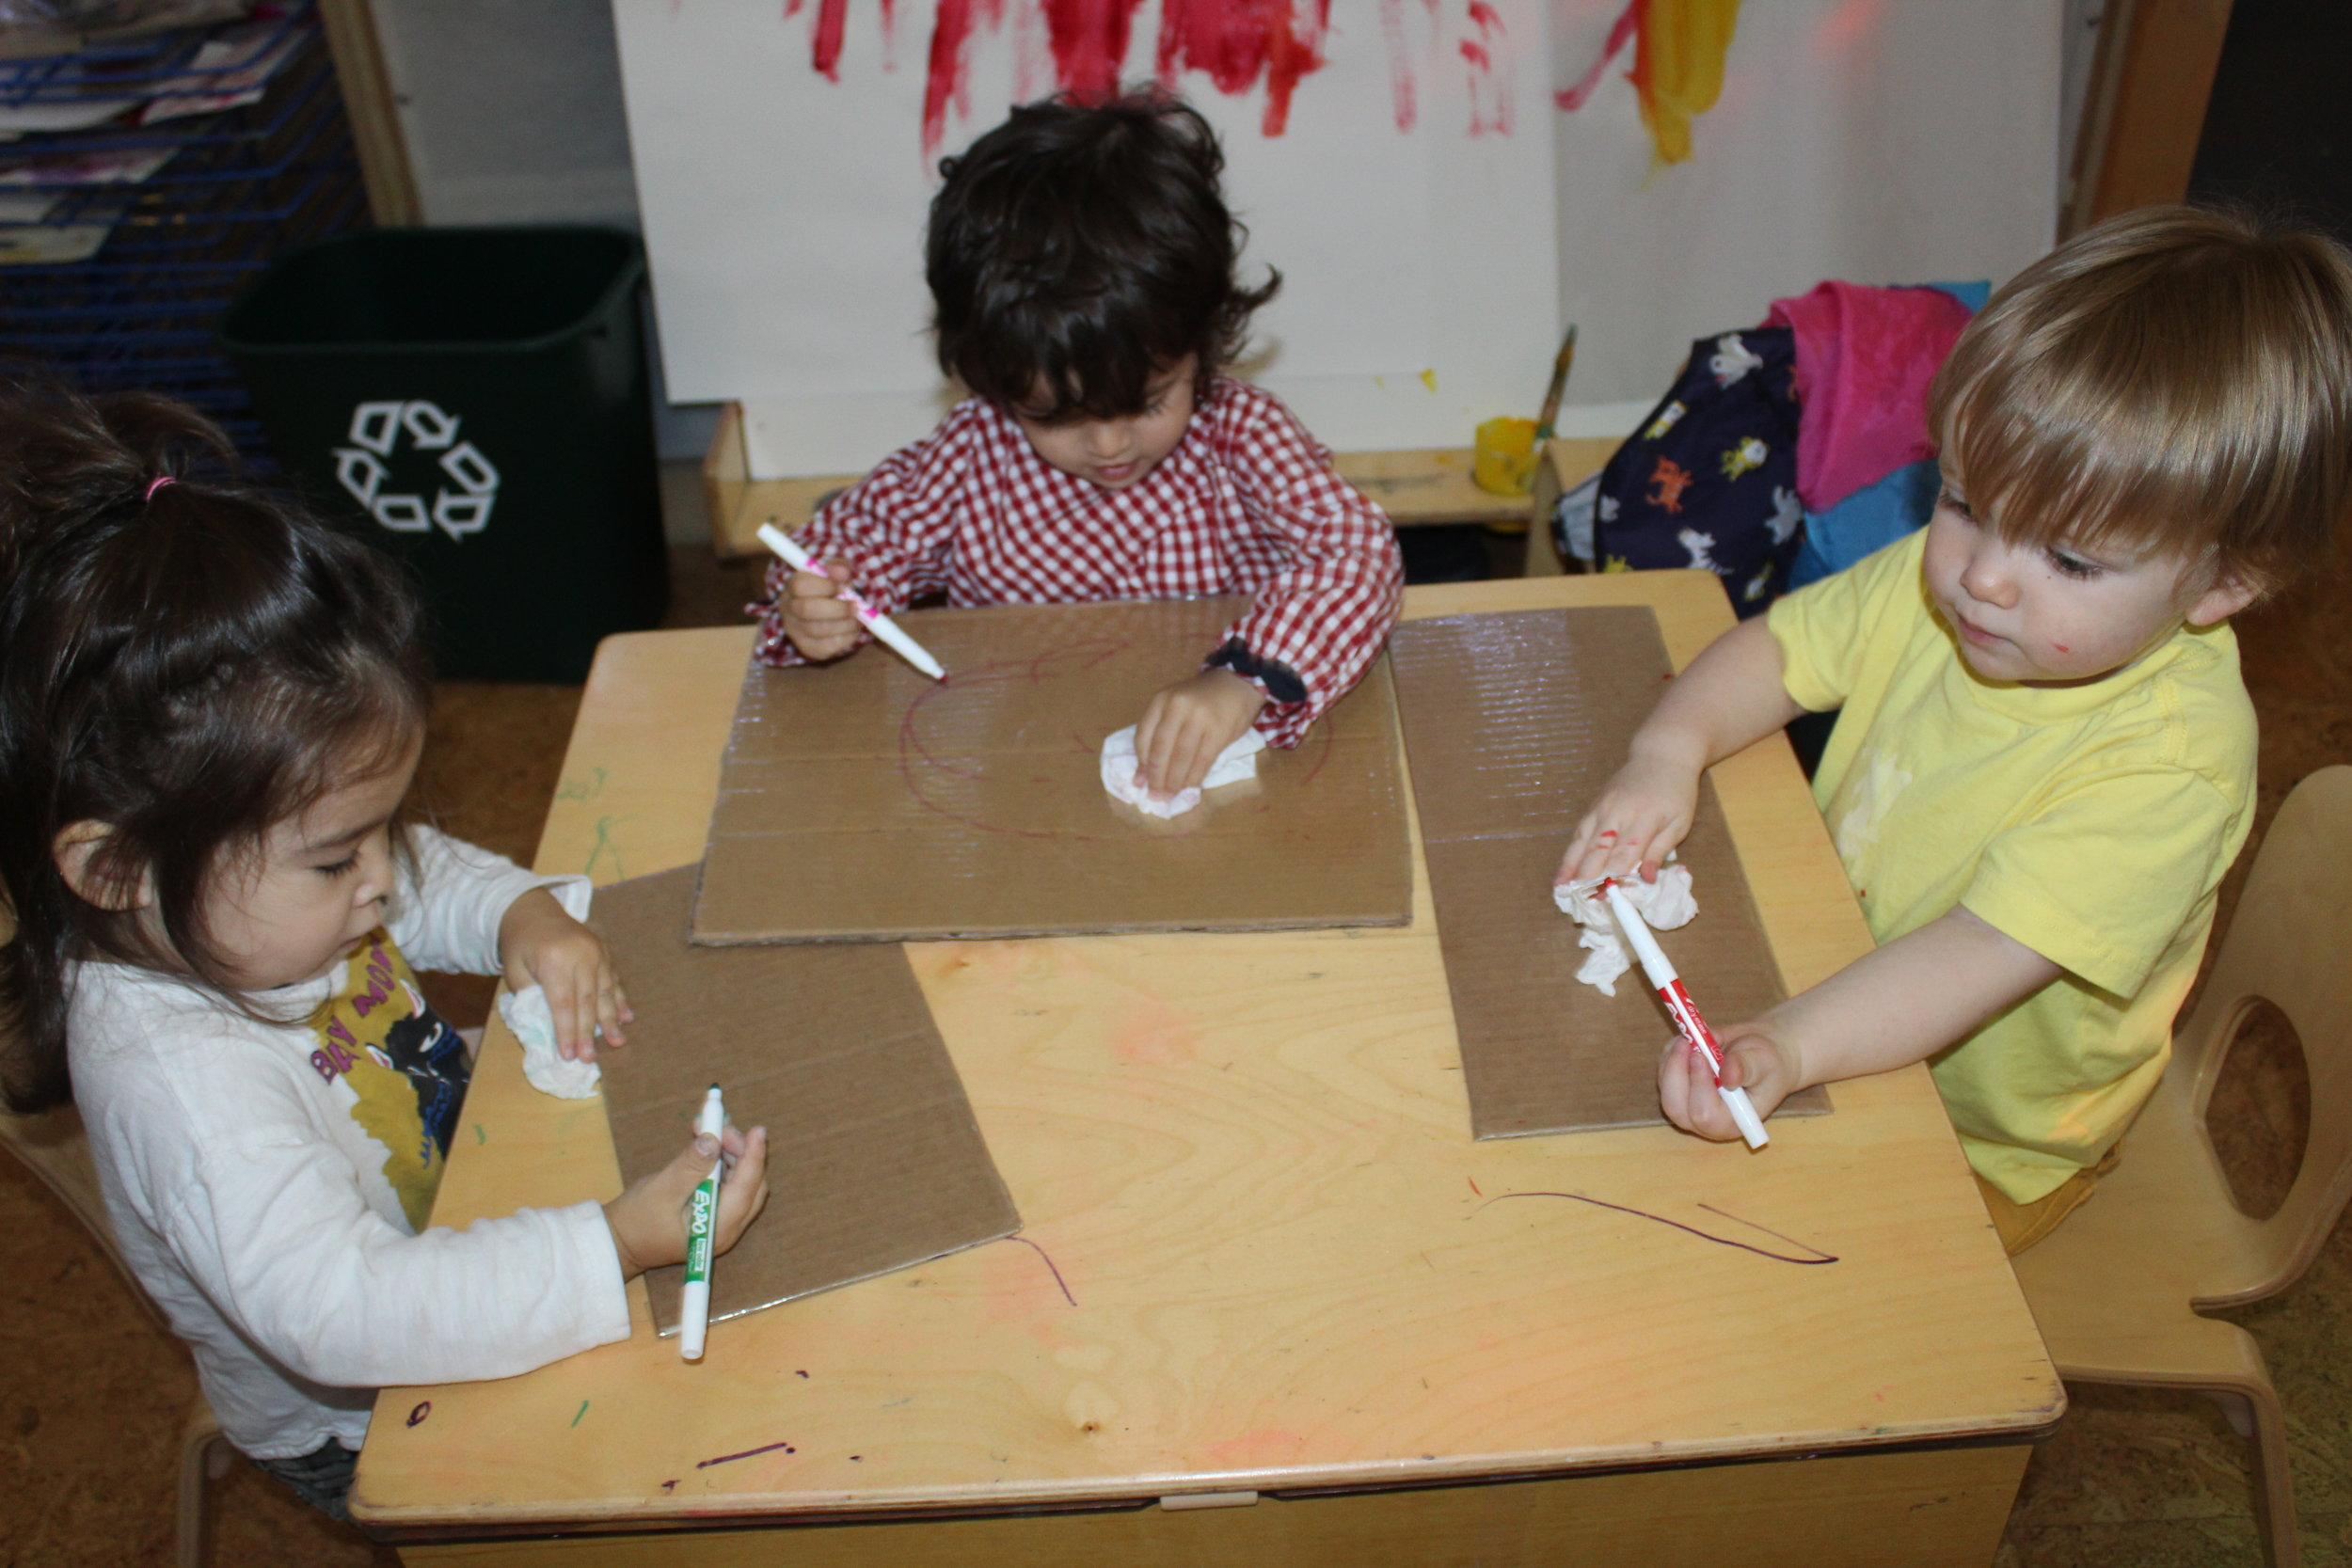 The children are drawing on a particular contact paper in which they can use erasable markers. They draw zig-zag, straight, or curvy lines, or pictures that represent something.